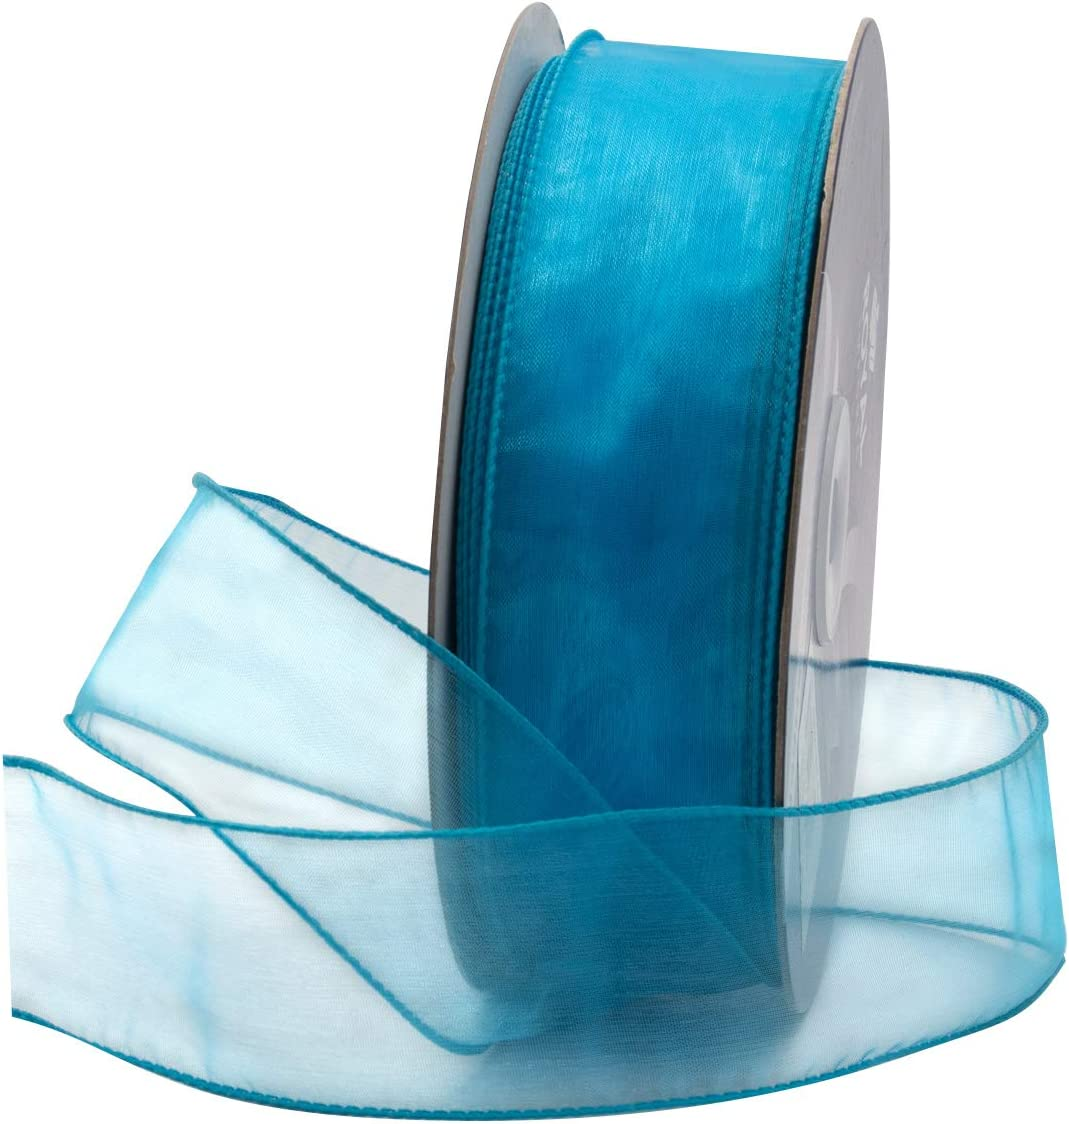 150 FT Spool Bulk by Royal Imports #9 Turquoise Blue Organza Wired Sheer Ribbon 1.5 50 Yard Roll for Floral /& Craft Decoration